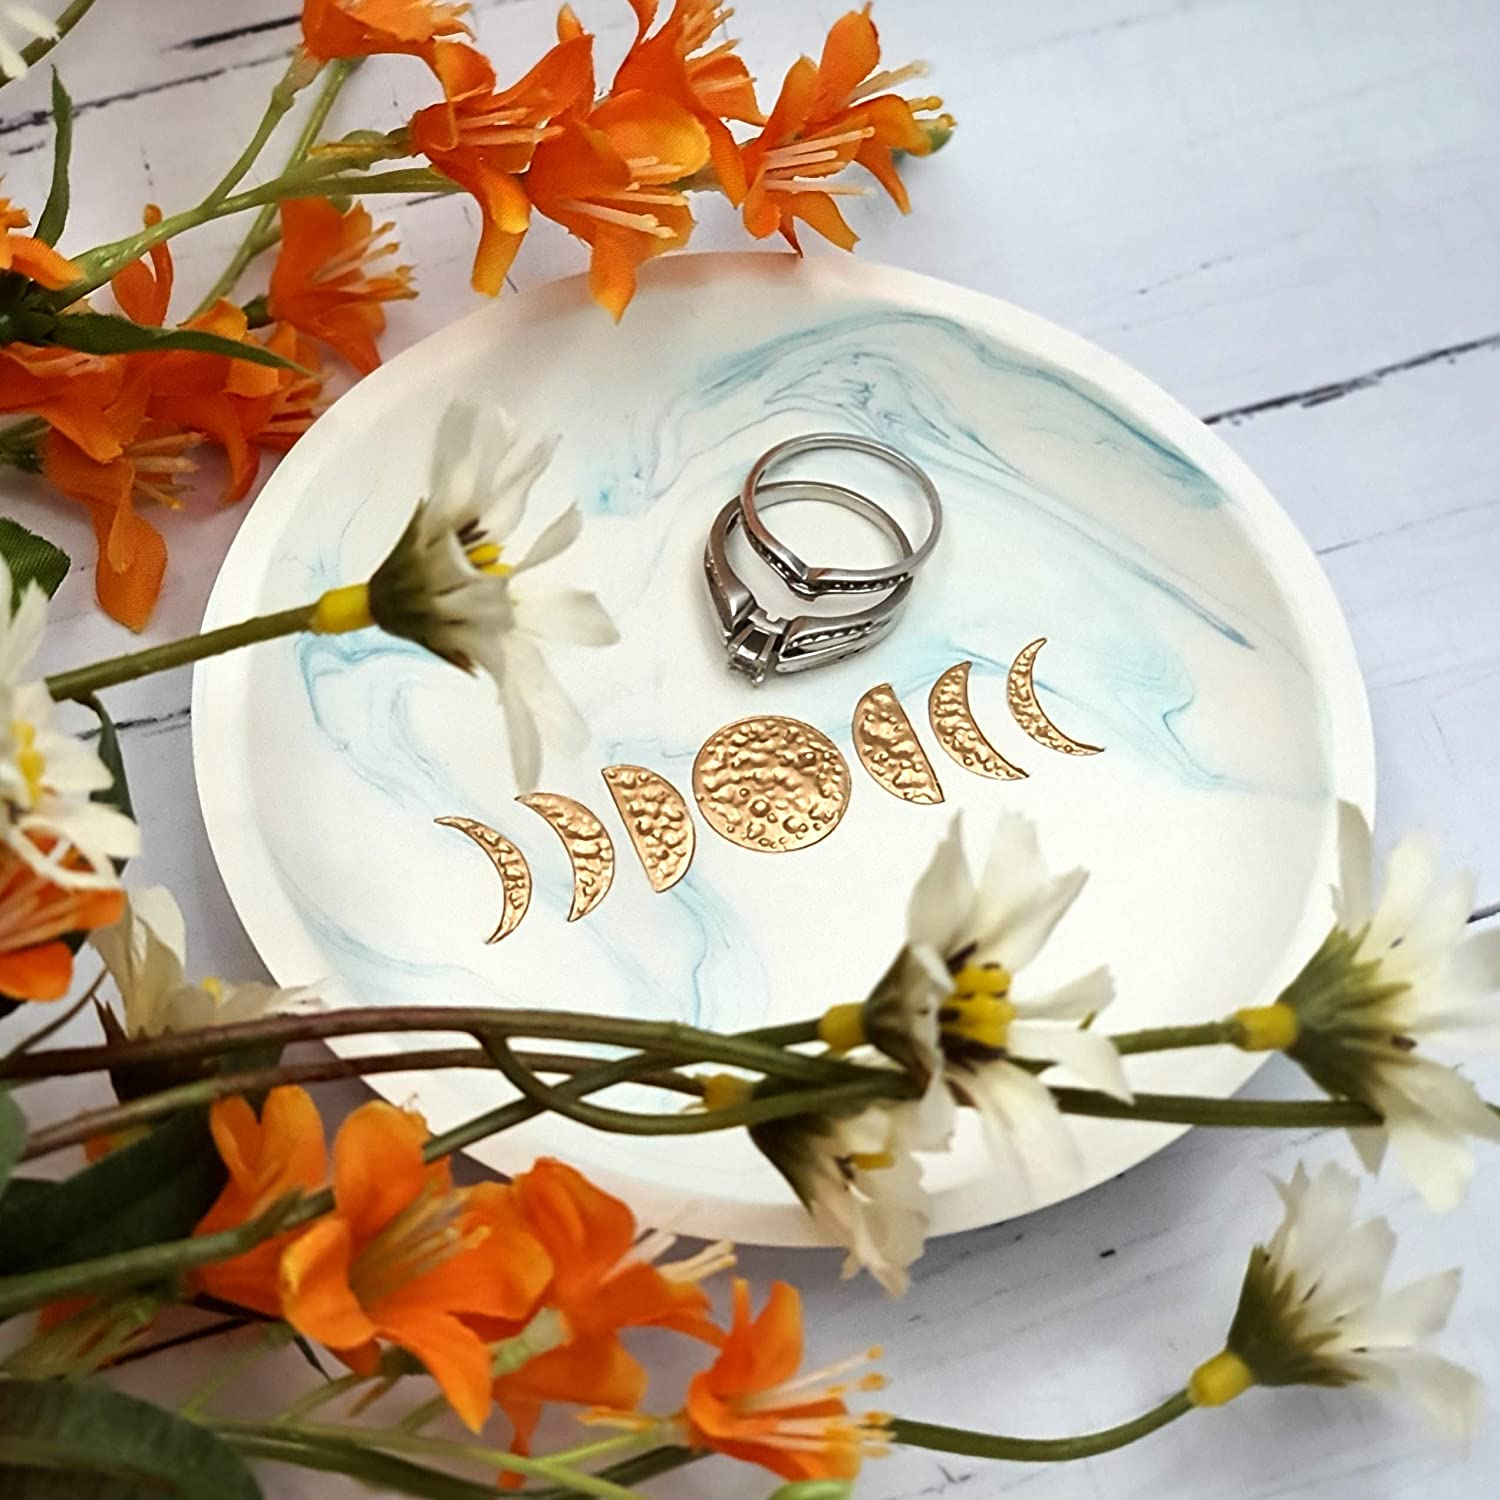 Moon Goddess Jewelry Boho Decor for Bedroom Phases of the Moon Ring Dish Choose Your Moon Color Celestial Moon Ring Holder Dish Moon Jewelry Dish Moon Phases Jewelry Dish Bohemian Ring Holder